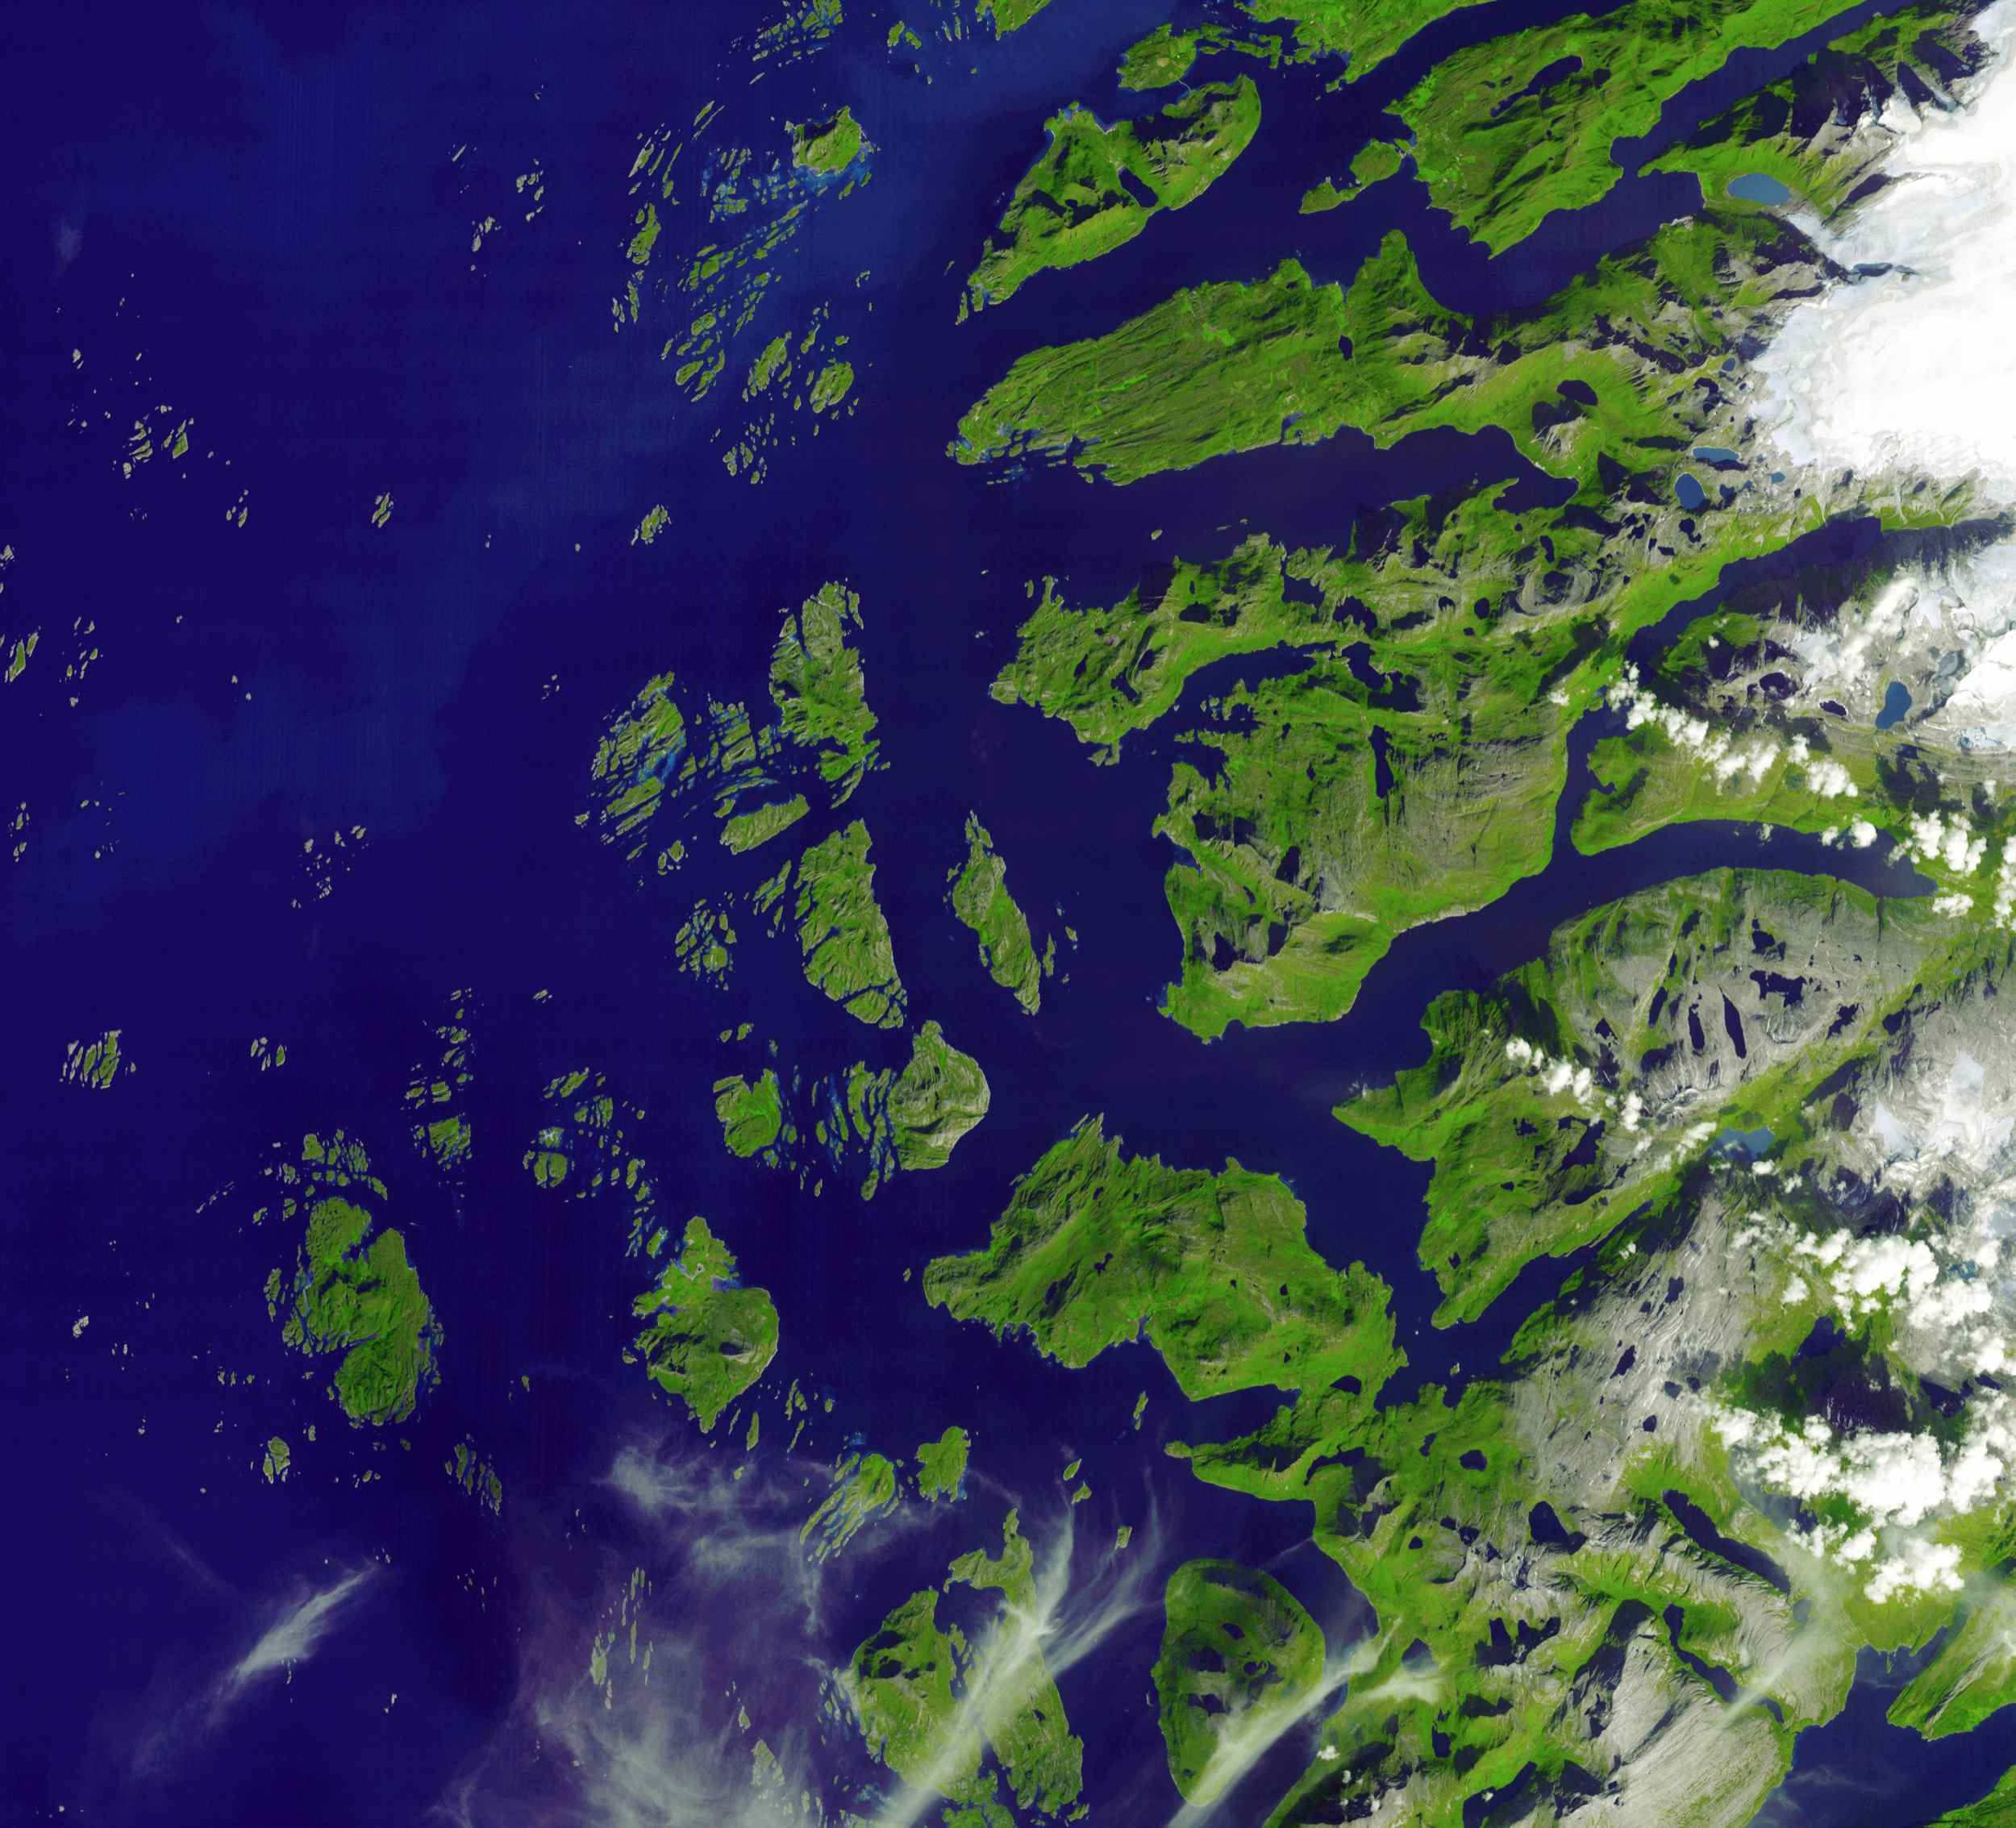 The Arctic Circle cuts through the western coast of Norway and the Saltfjellet-Svartisen National Park. This image was acquired by NASA's Terra satellite on August 23, 2006.